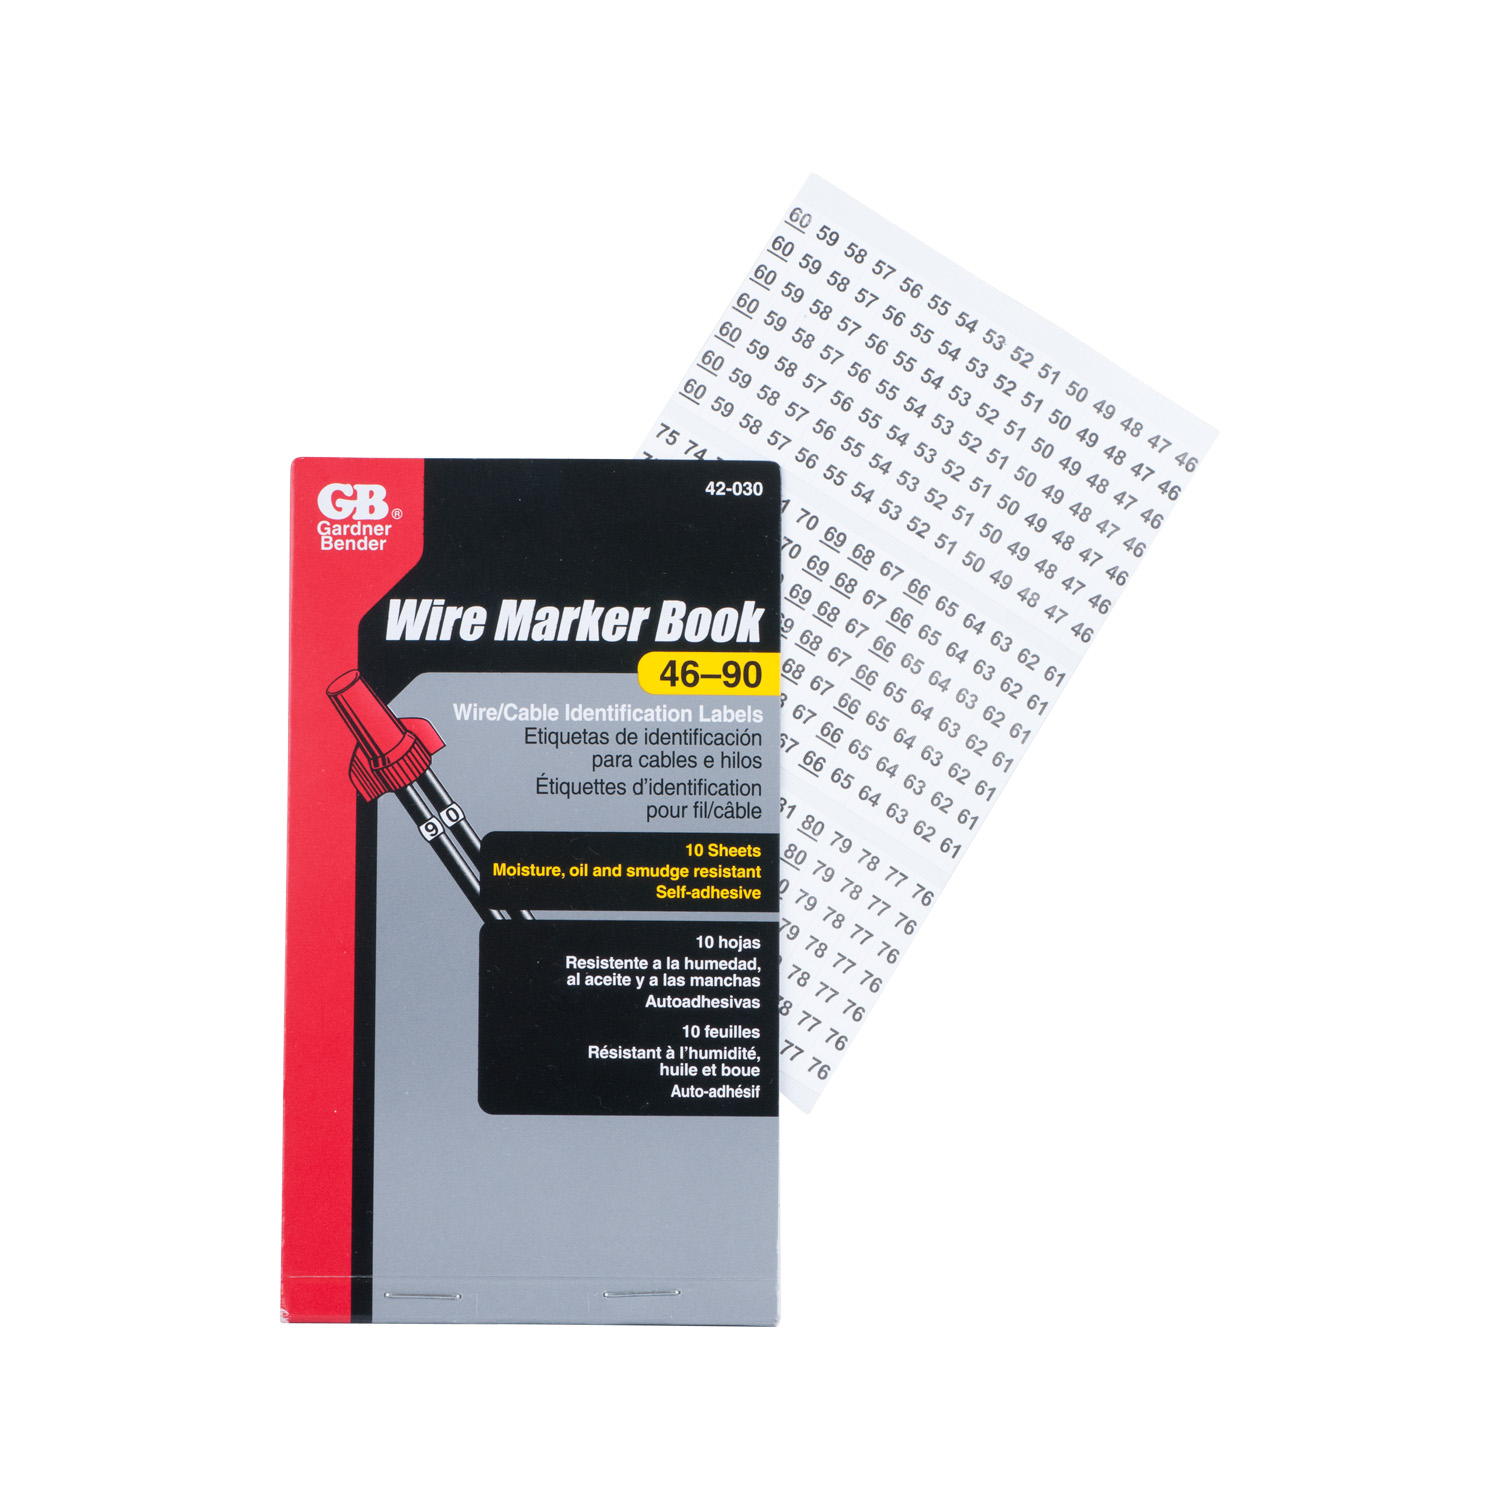 Mayer-Pocket-sized booklets of cloth wire markers and matching terminal markers.-1